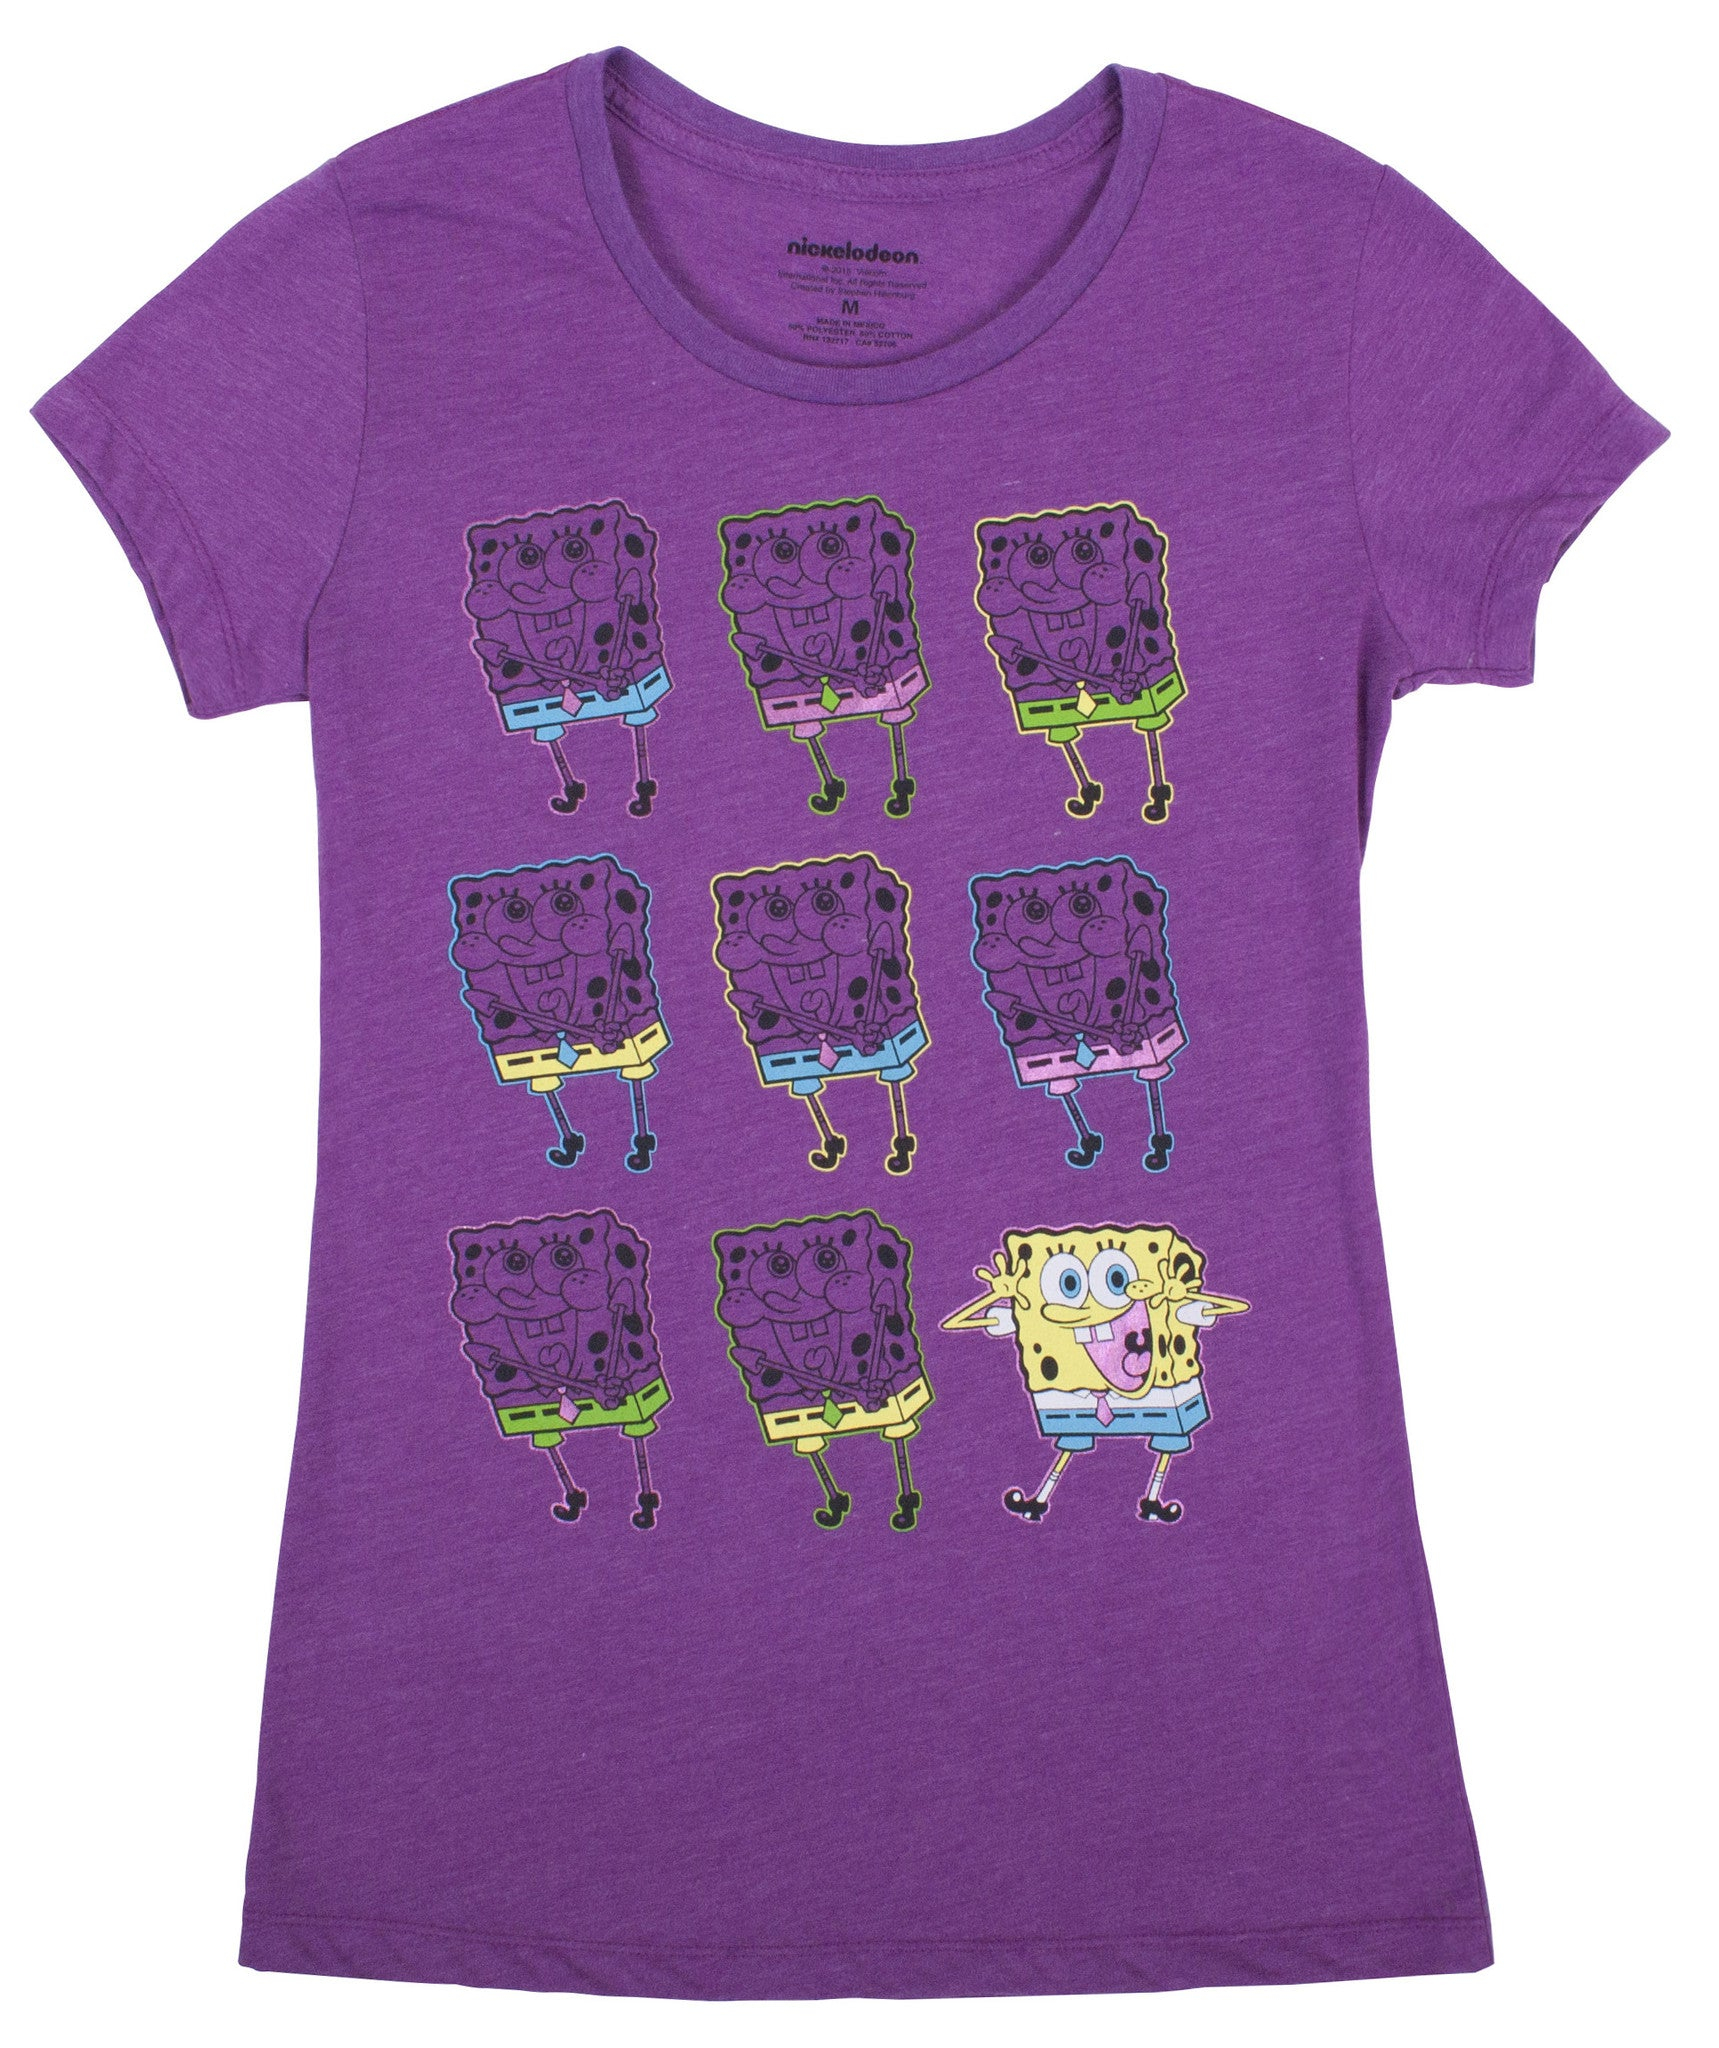 "SpongeBob ""Rows Of Bobs"" Crew Neck Tee - Junior - nickelodeonstore.co.uk"